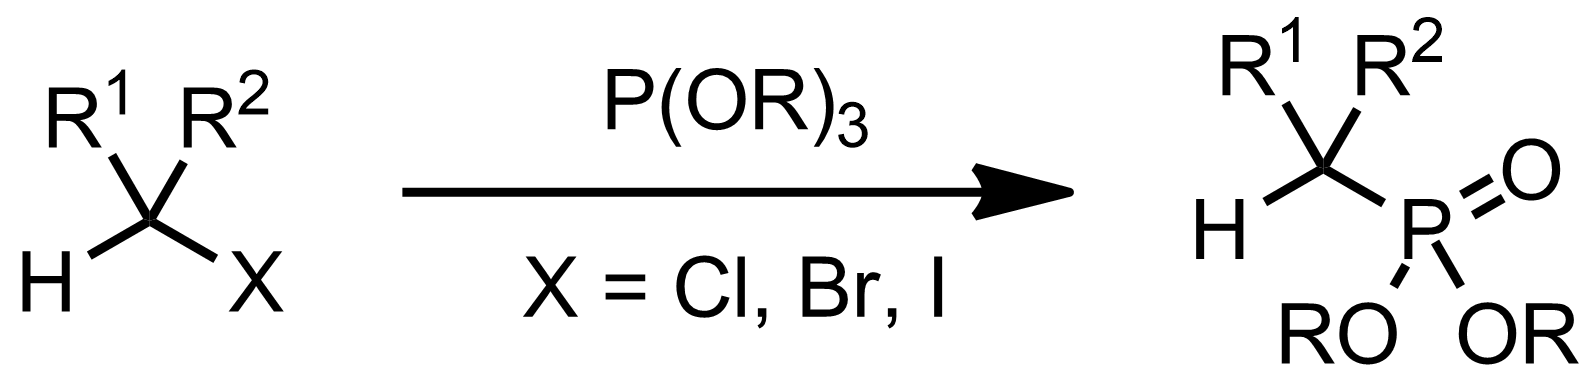 Schematic representation of the Michaelis-Arbuzov Reaction.